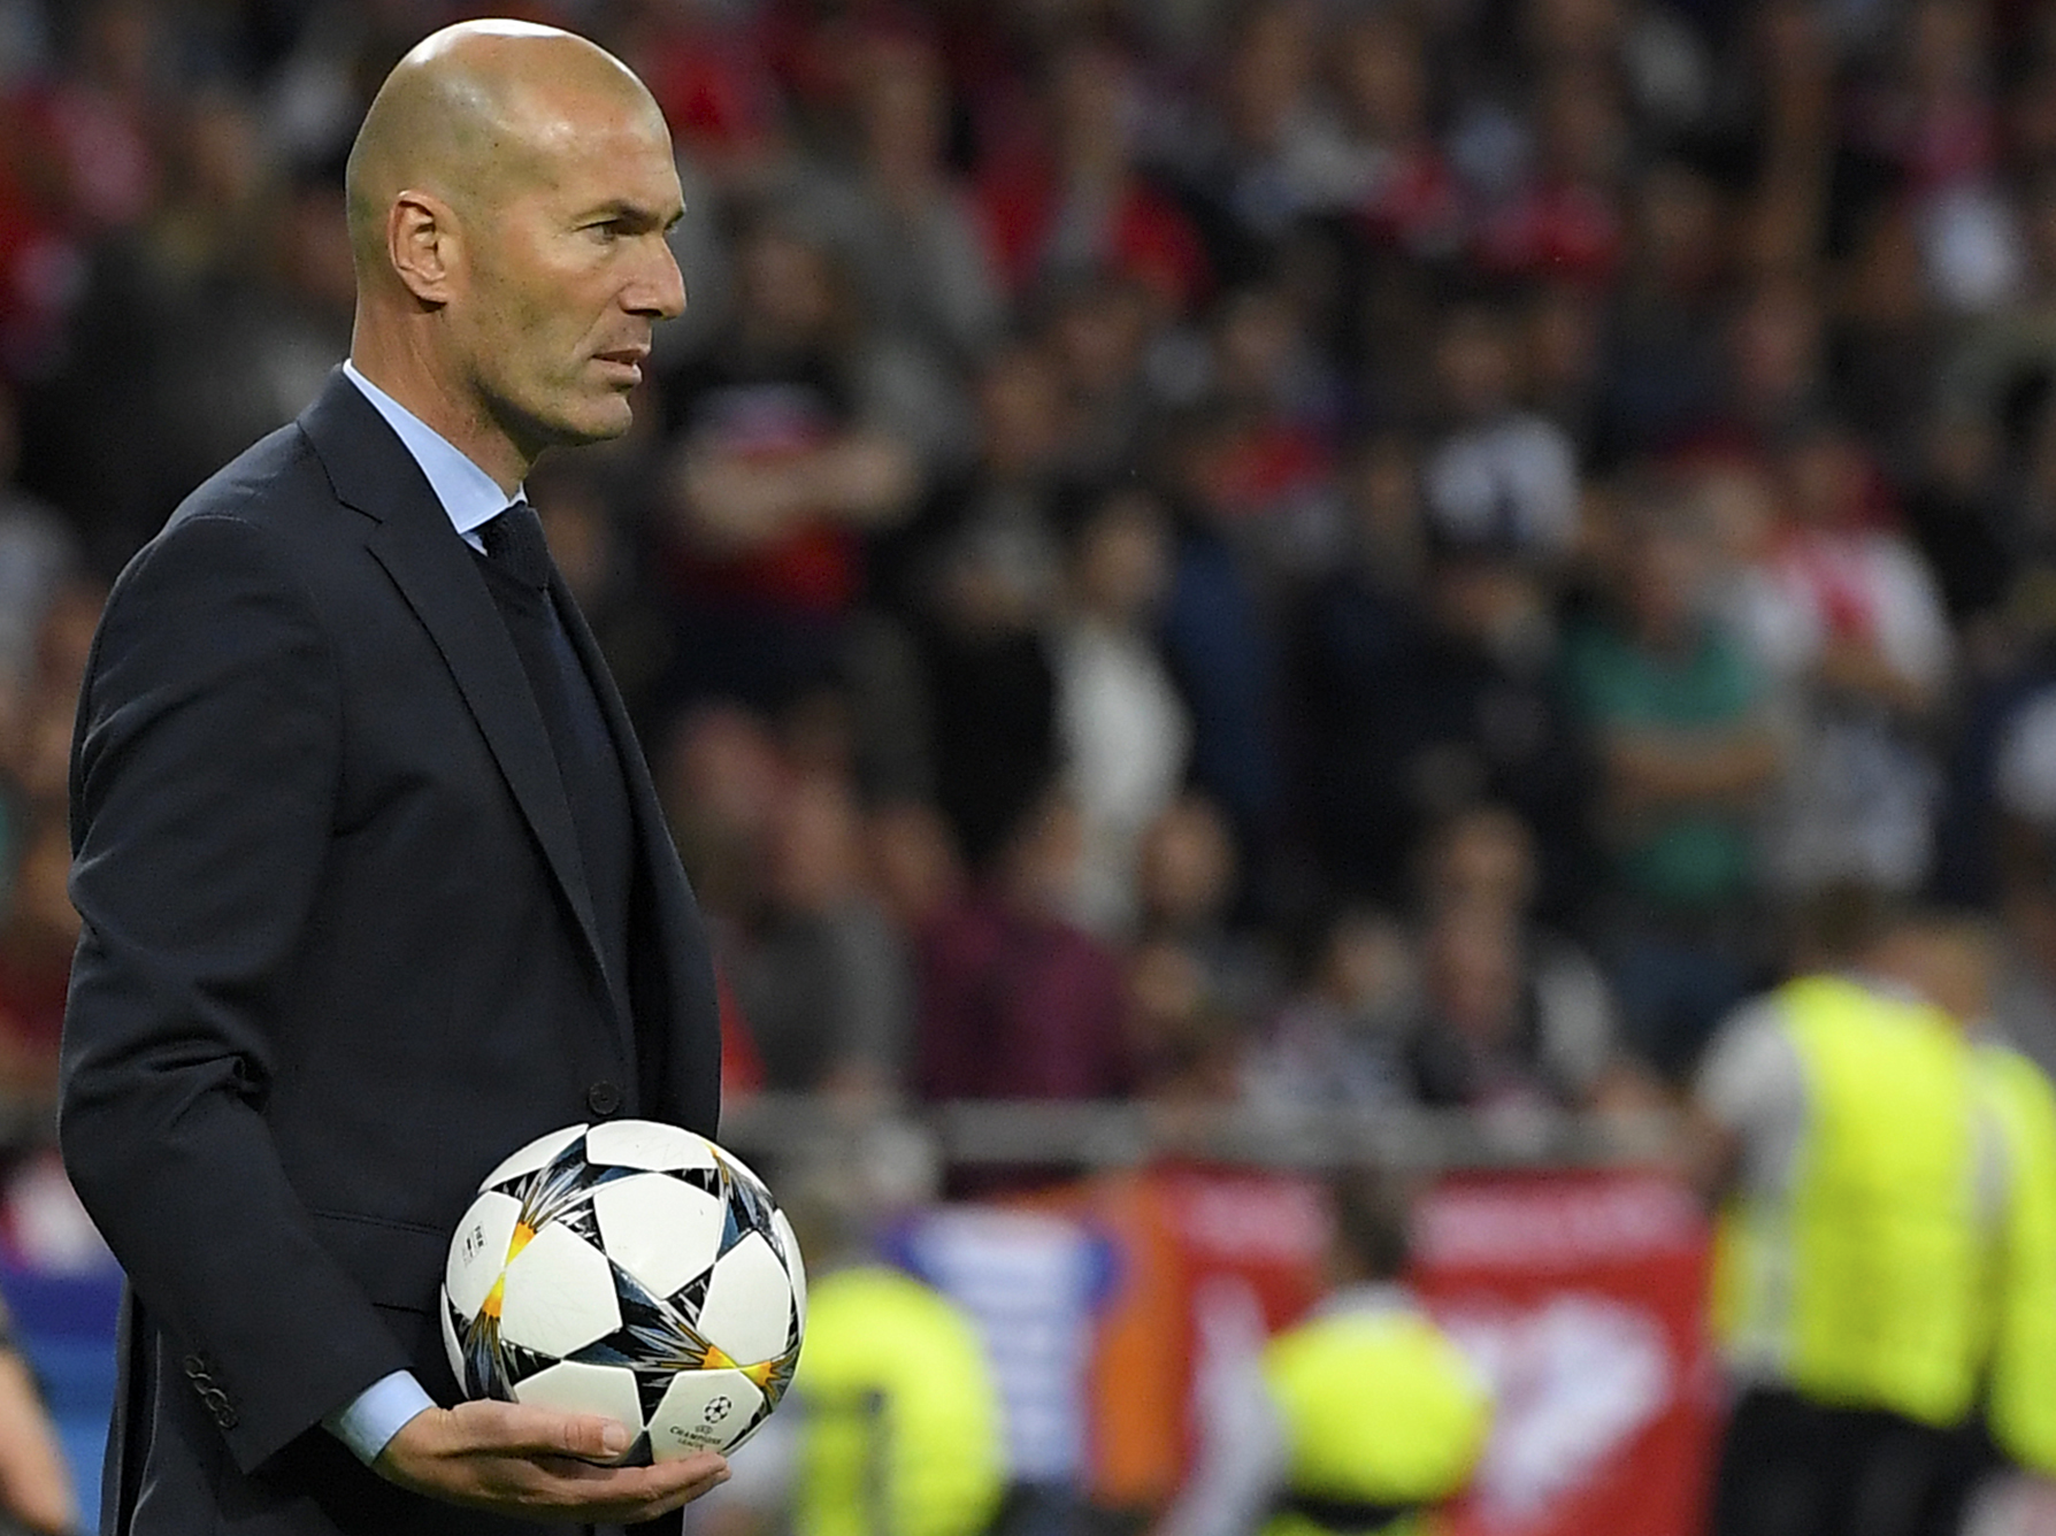 Zidane Left Real Madrid After Two And A Half Years And Has Been Out Of Work Since Getty